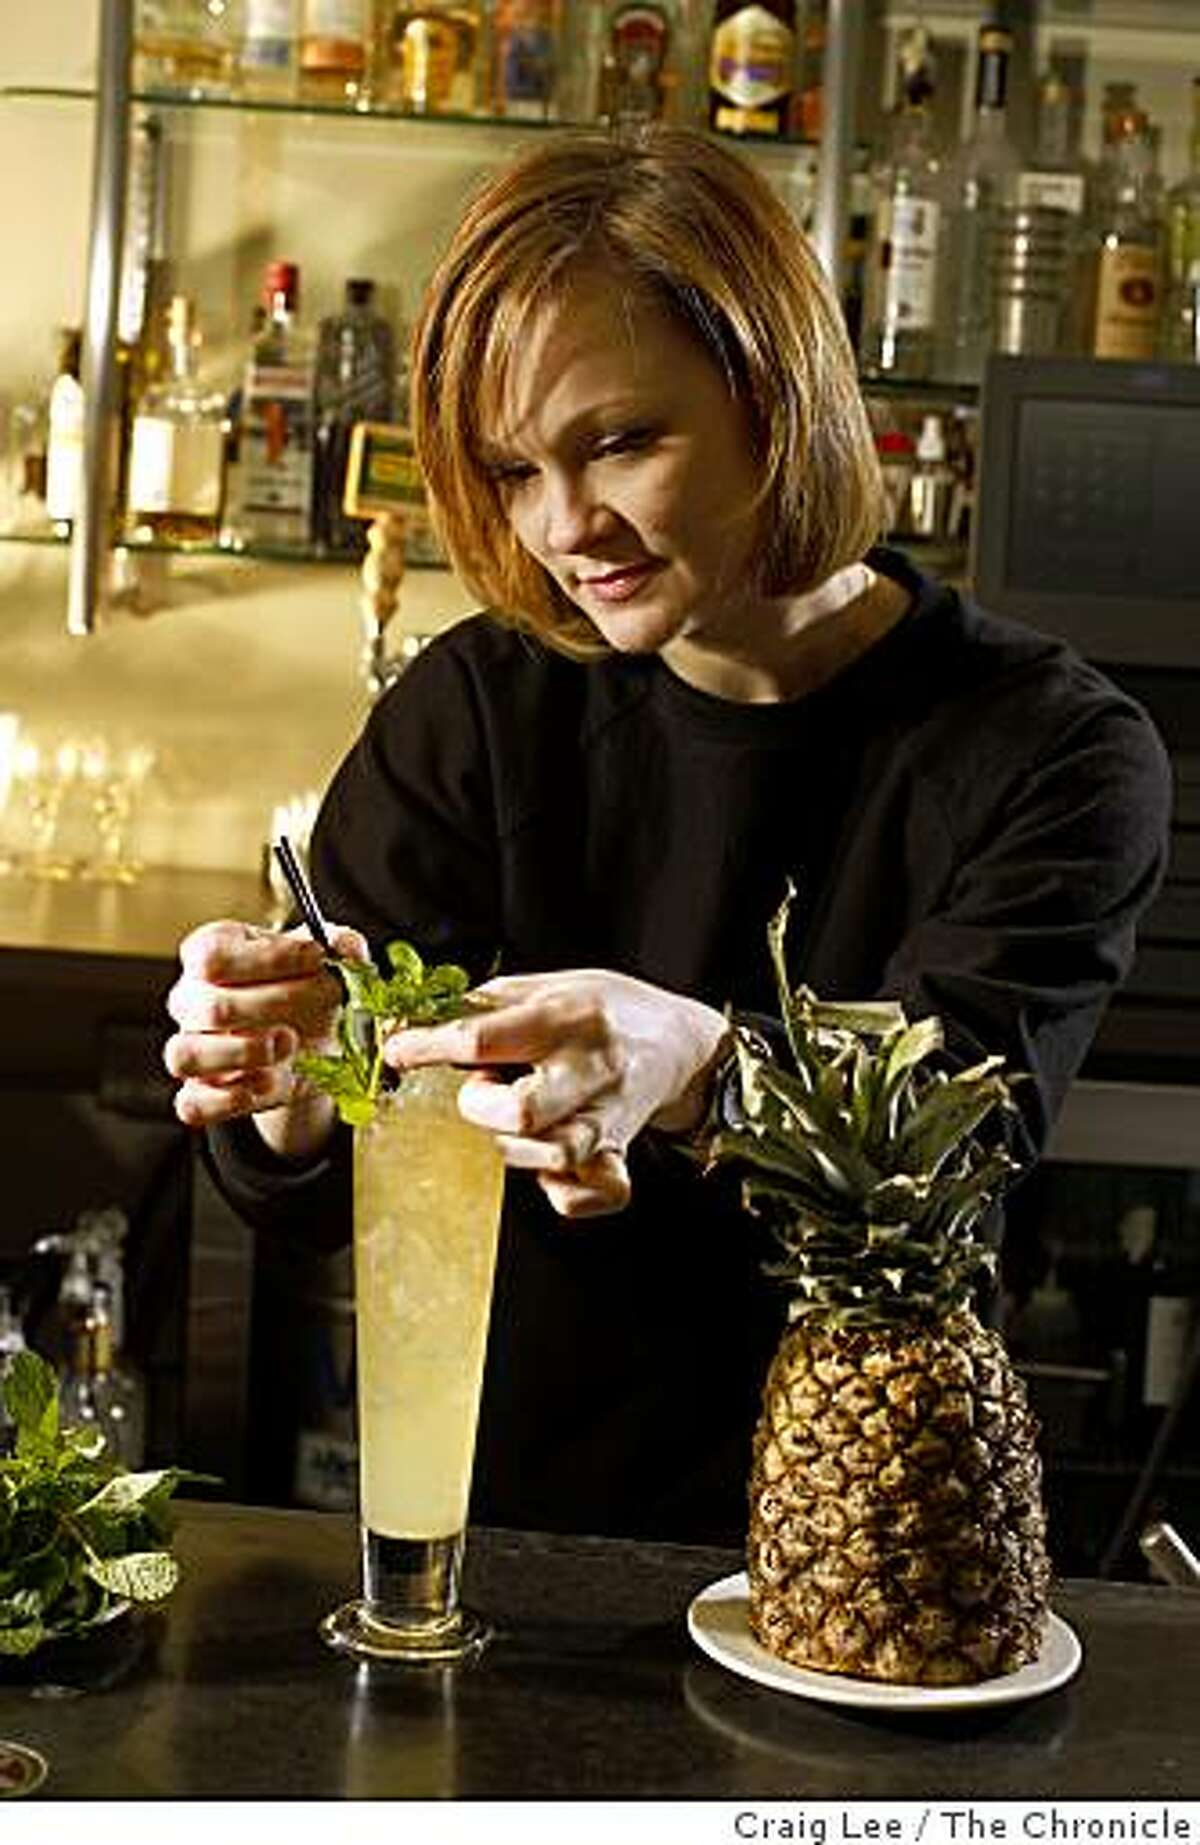 Brooke Arthur, making a cocktail drink, called Strange Brew, where beer is one of the ingredients at Range restaurant in San Francisco, Calif., on January 7, 2009.